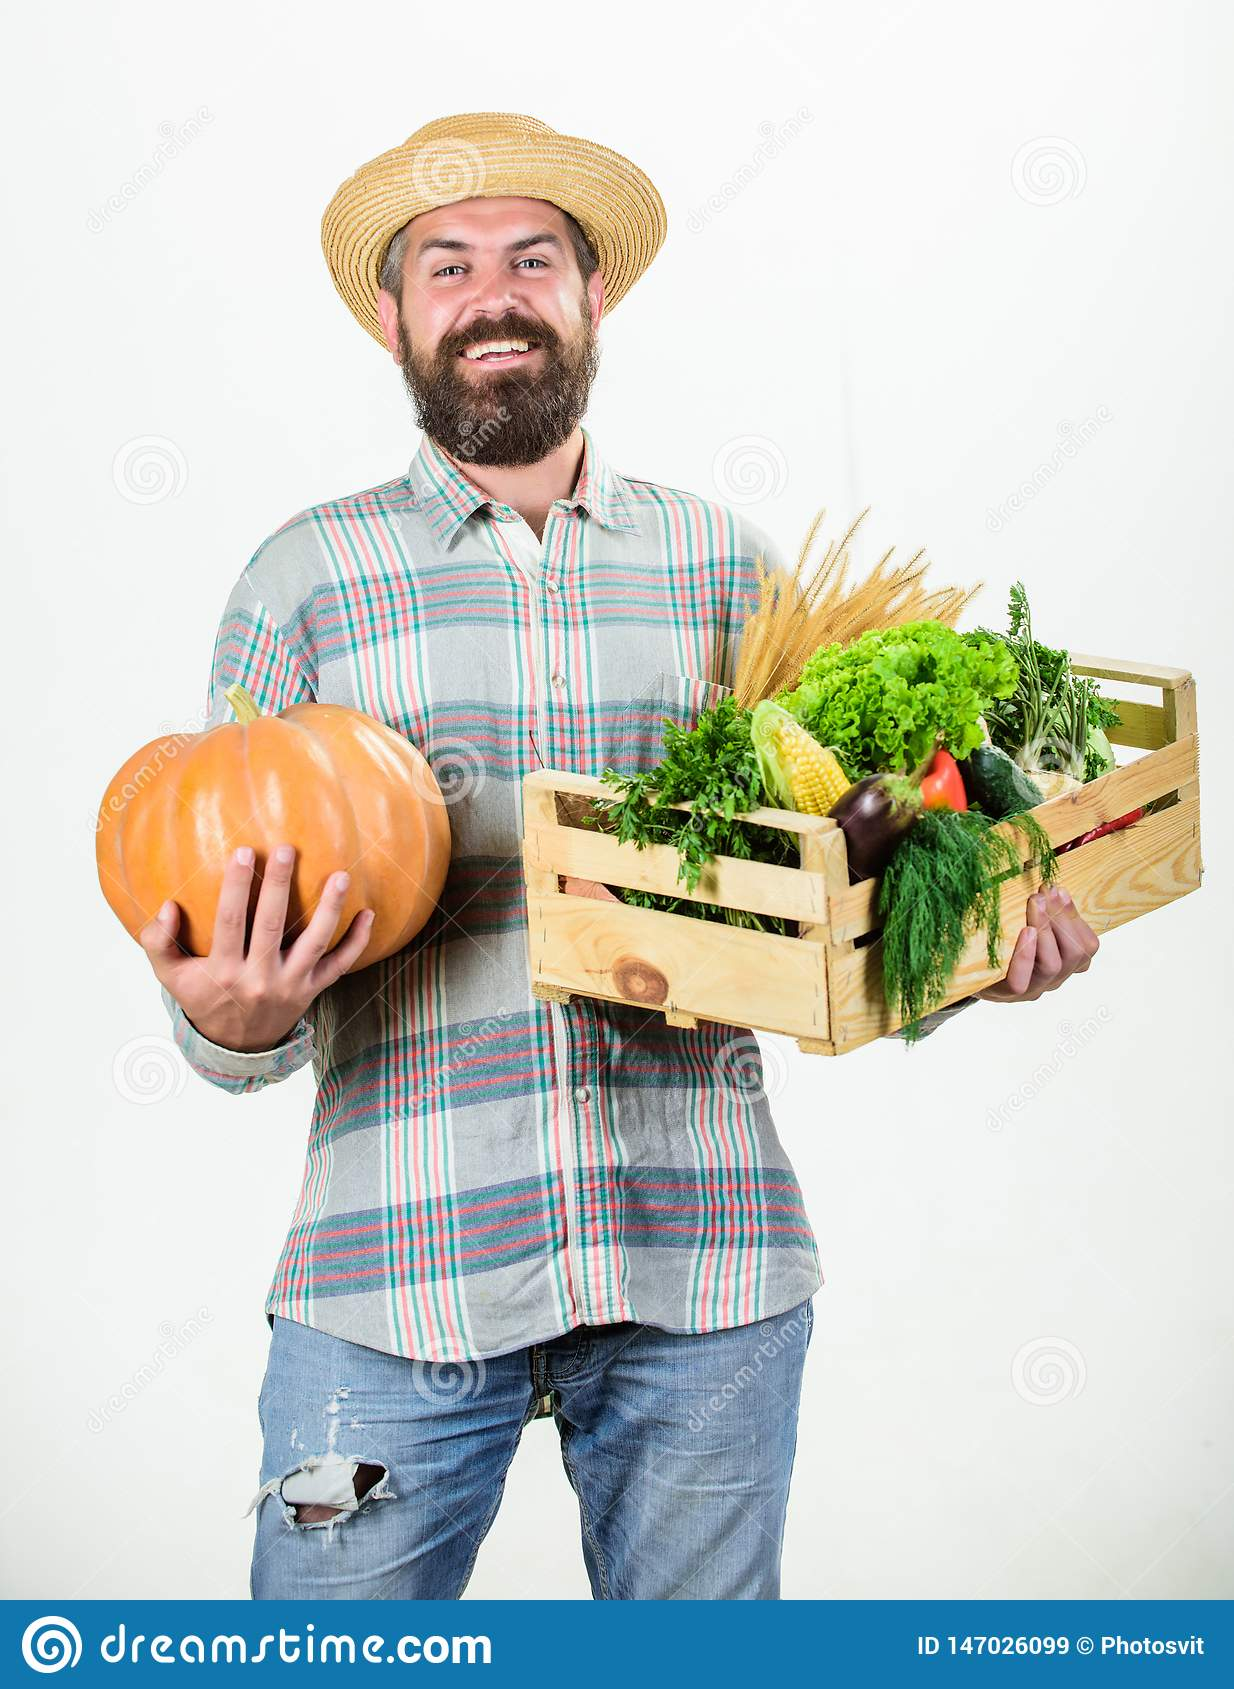 Professional farmer presenting basket. organic and natural food. happy halloween. harvest festival. man with rich autumn